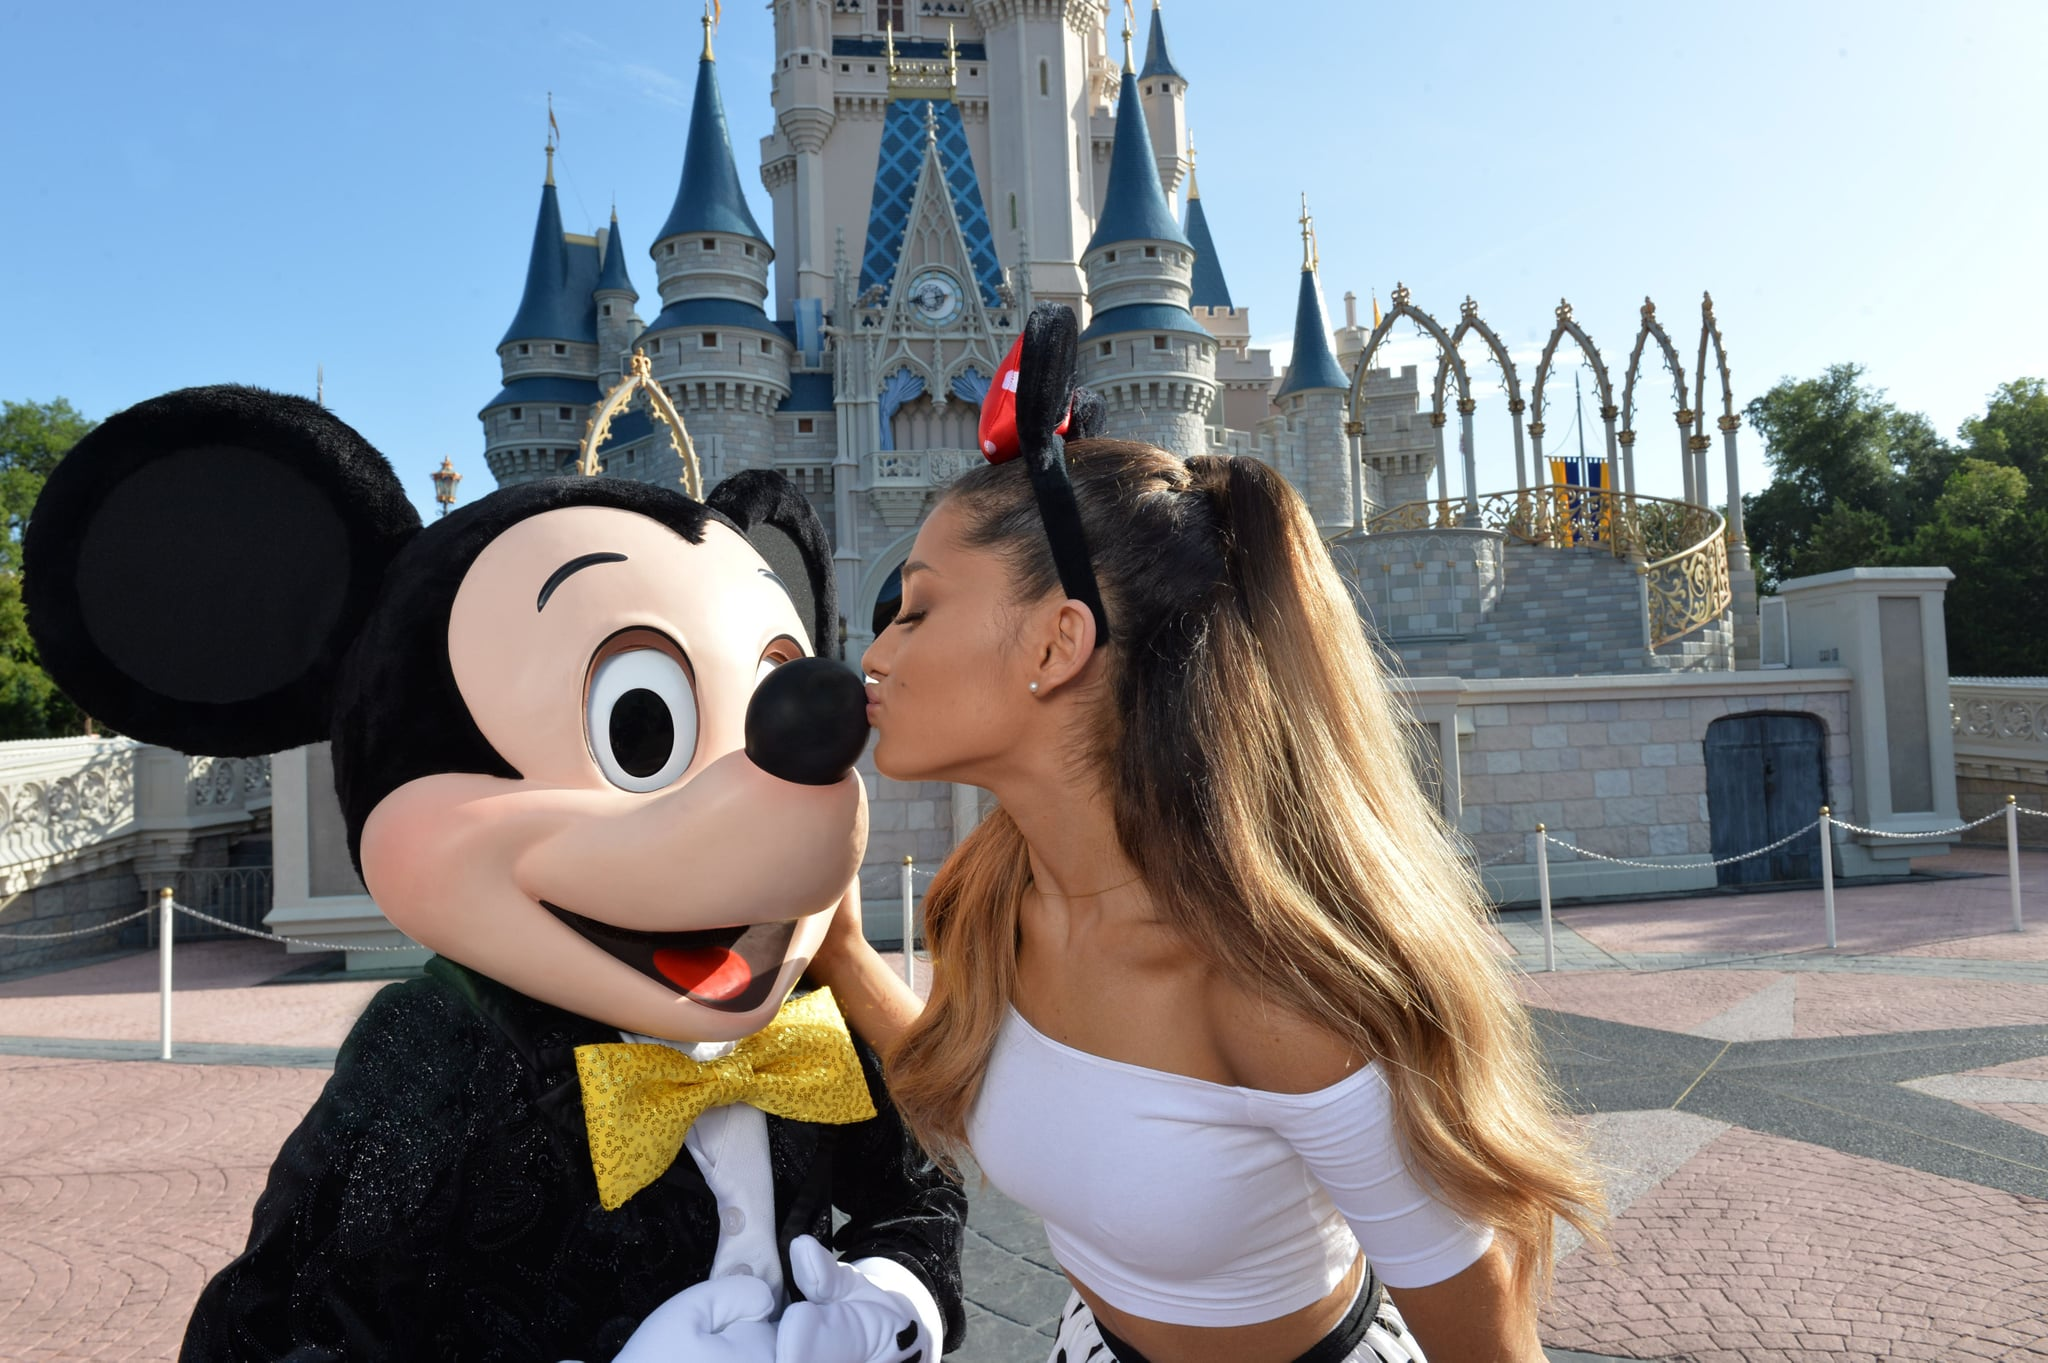 Ariana Grande celebrated her 21st birthday by kissing Mickey Mouse in June 2014.